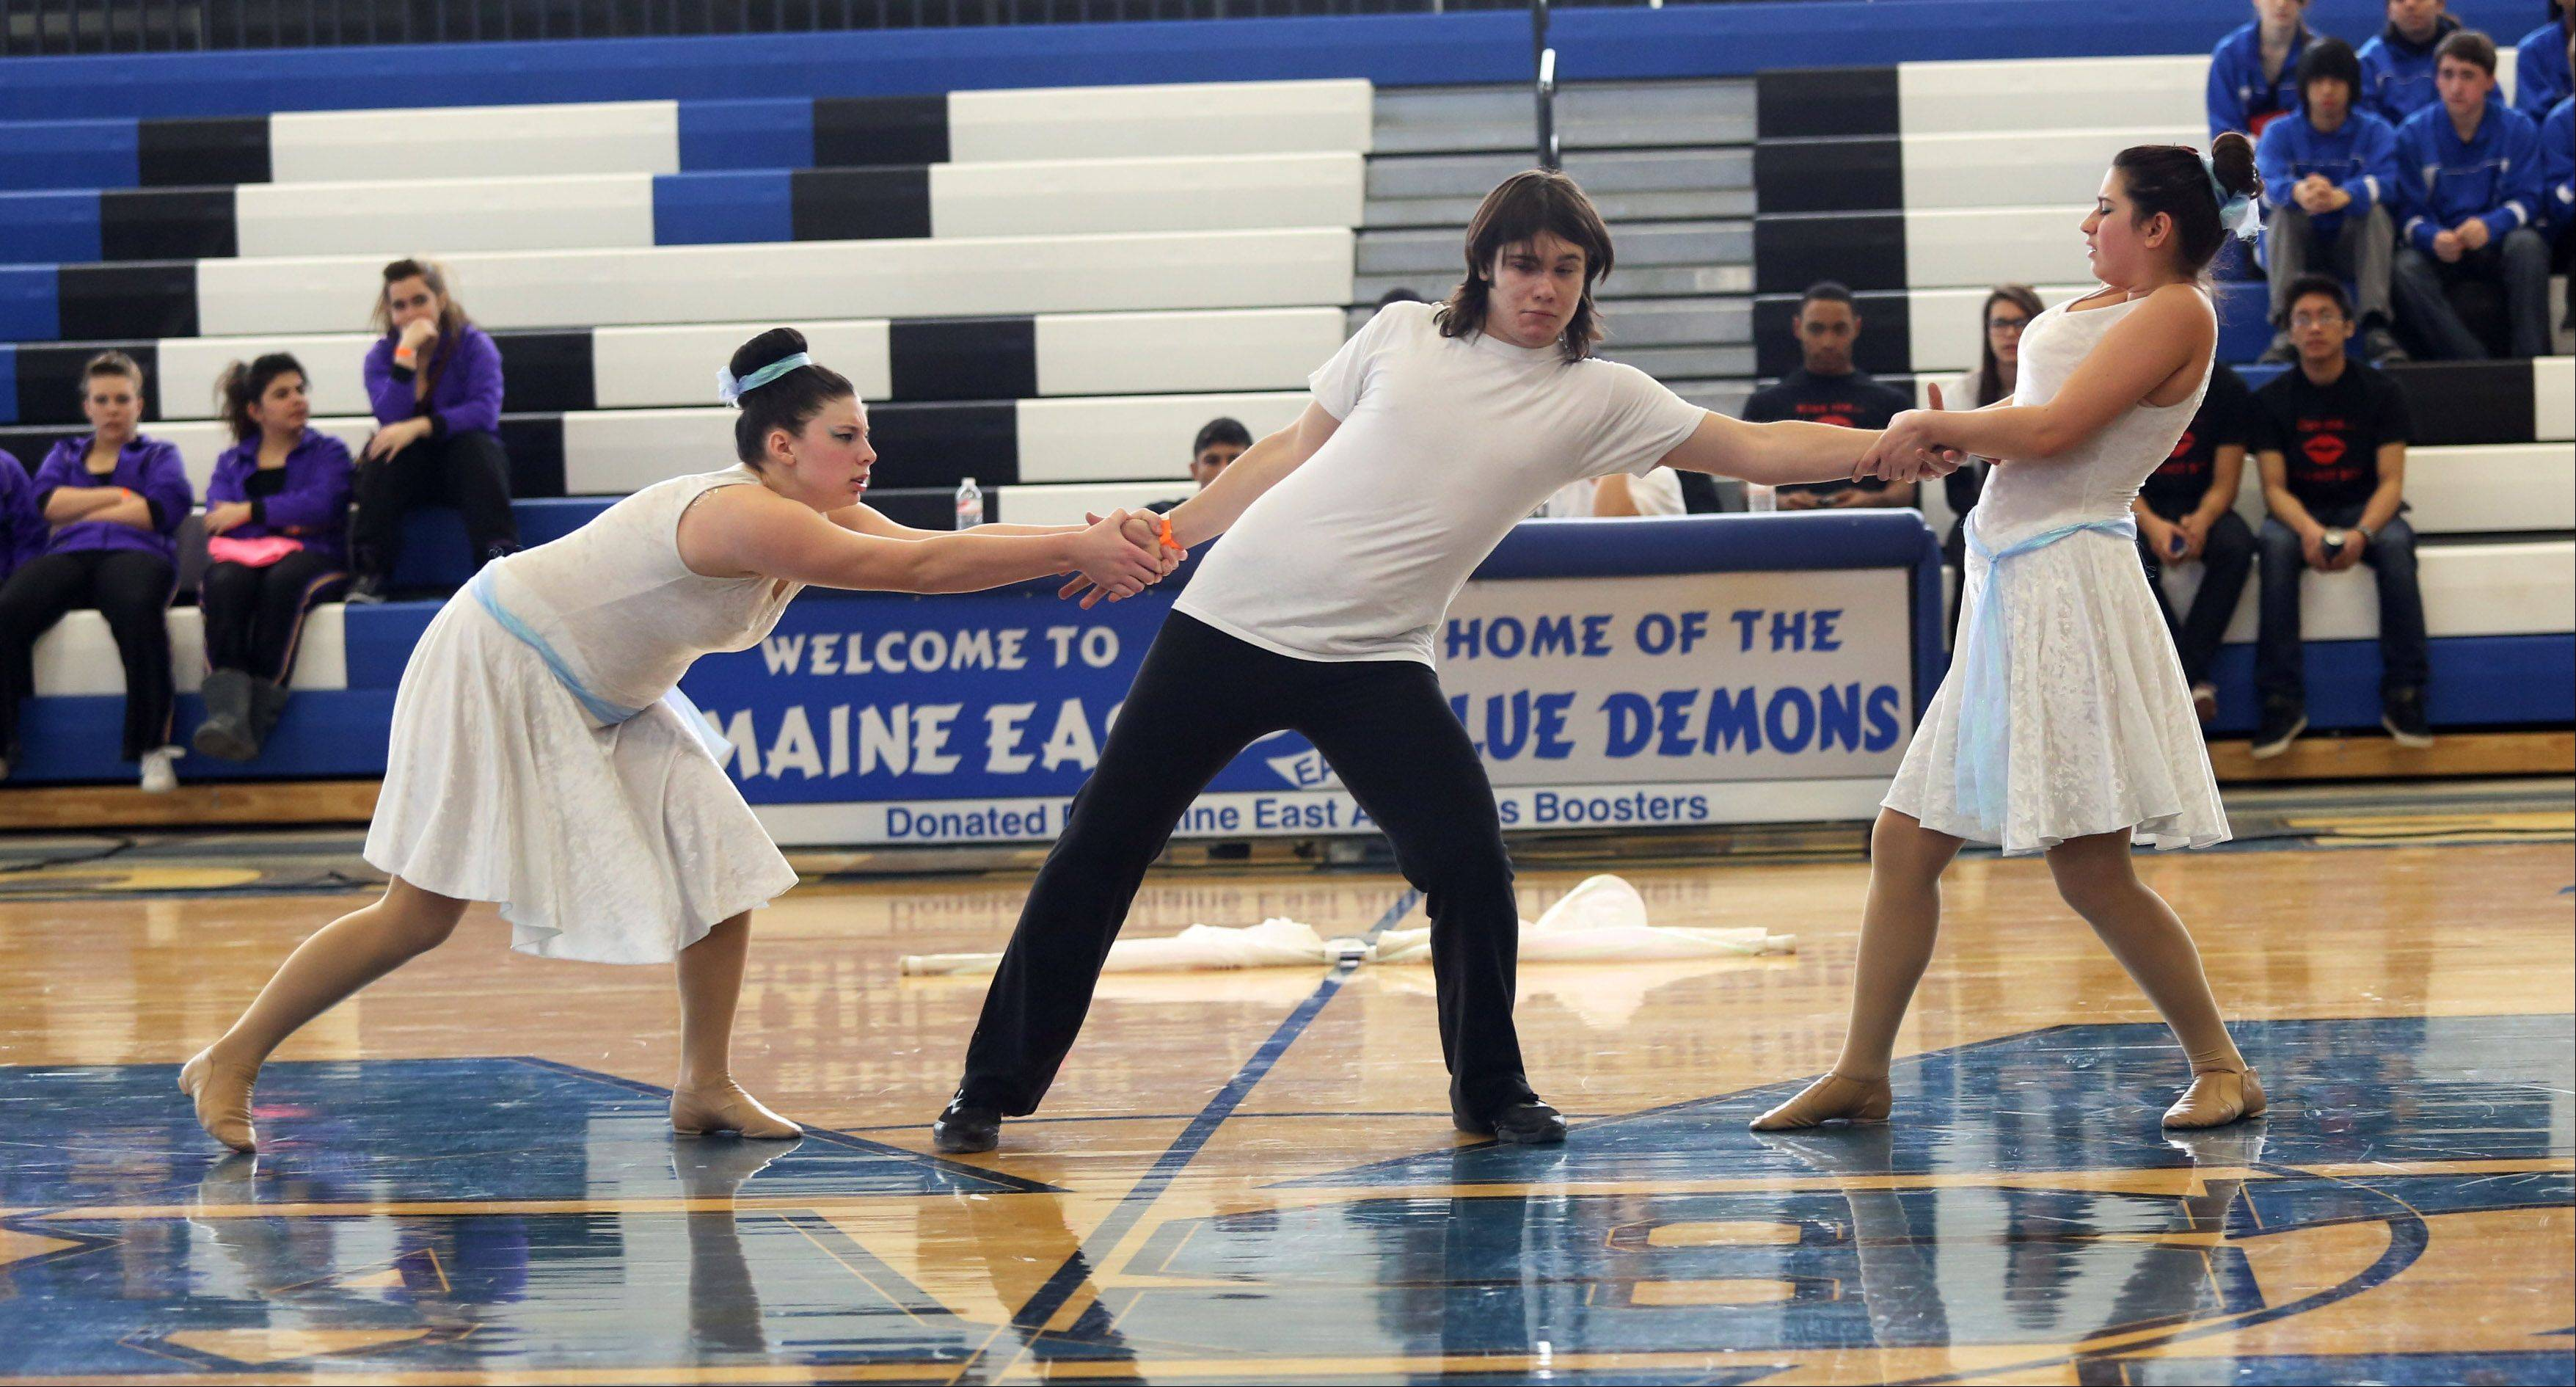 The St. Charles East High School junior varsity team performs in the Lyrical Flag division at the Illinois Drill Team Association regional competition Sunday at Maine East High School.